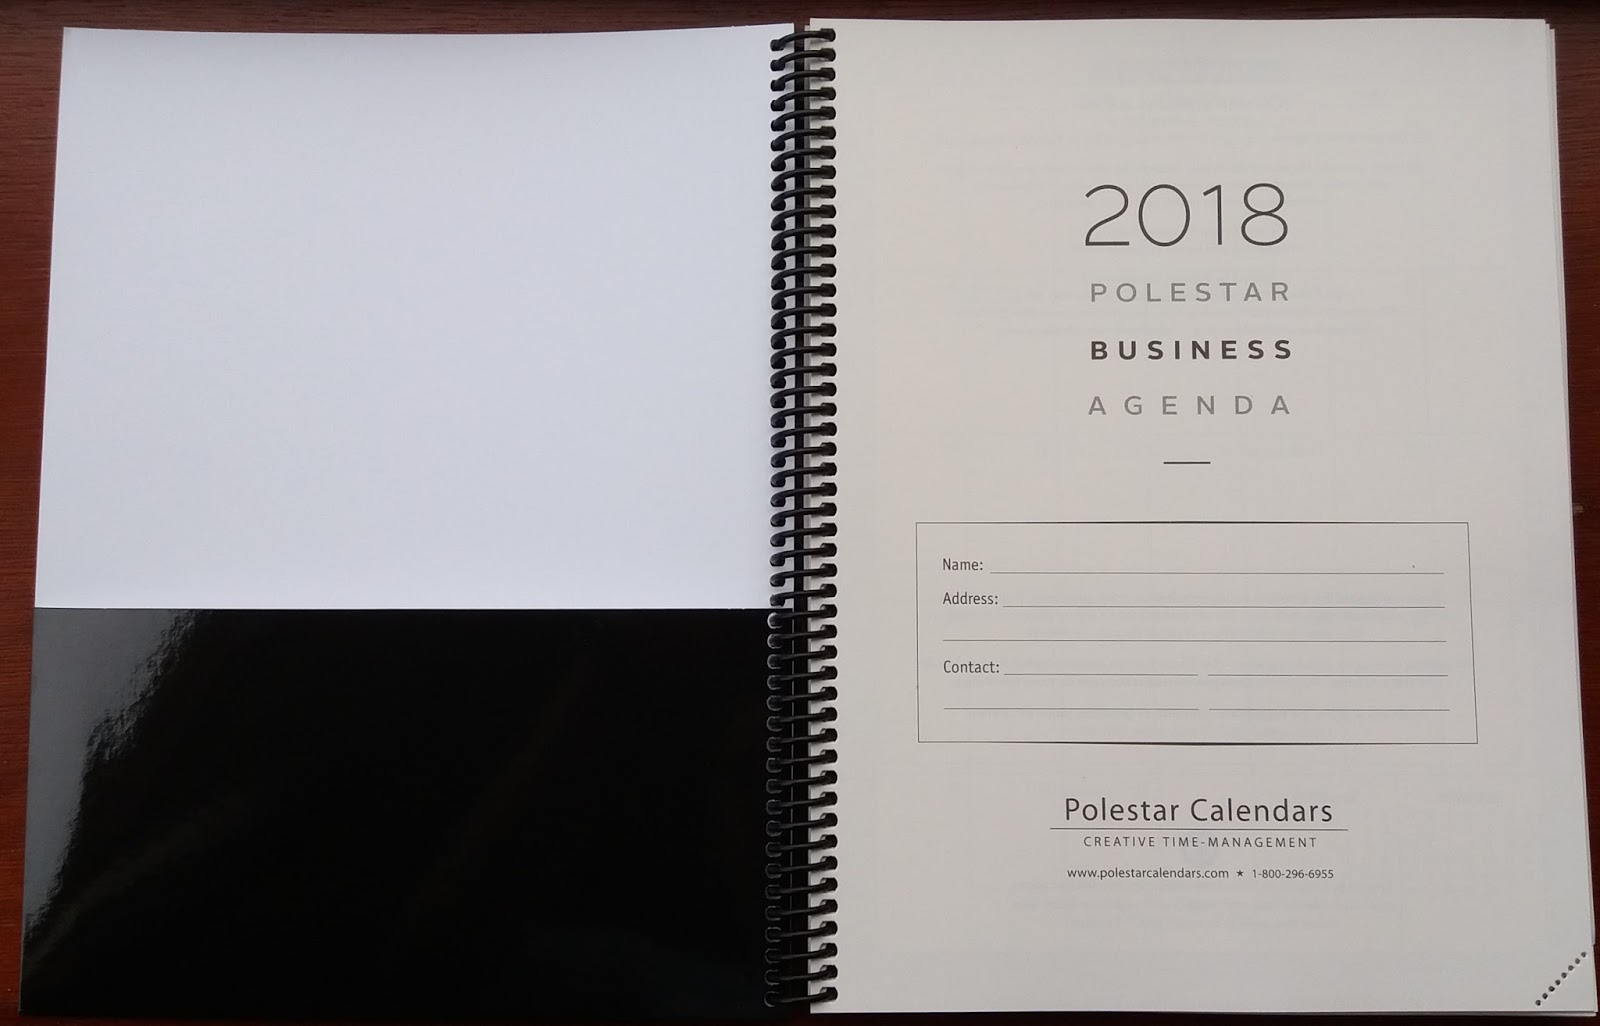 Plannerisms polestar calendars business agenda and polestar planner the business agenda also has contacts pages usa and canada reference pages and several lined pages for notes perforated corners allow you to find your altavistaventures Image collections